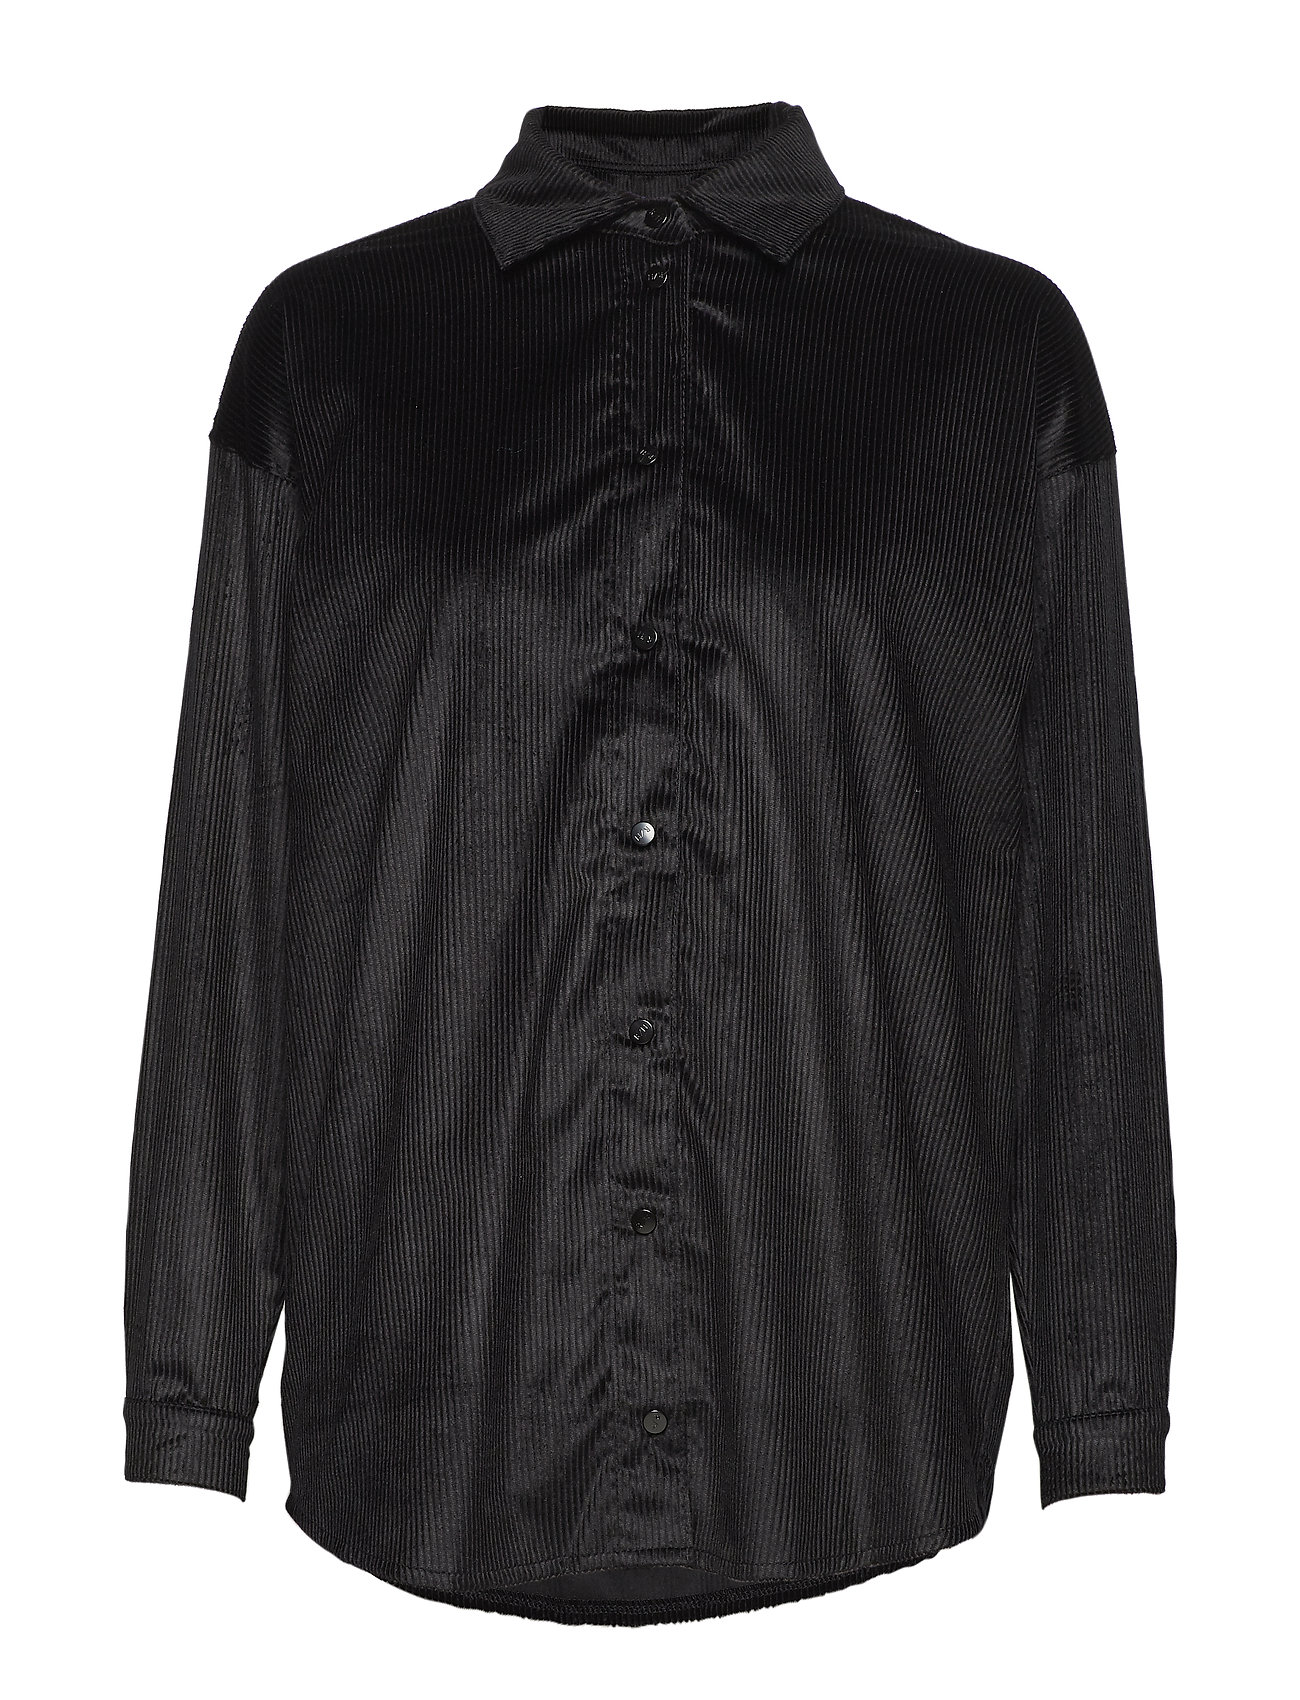 R/H Studio Abi Collar Shirt - BLACK LINE VELVET